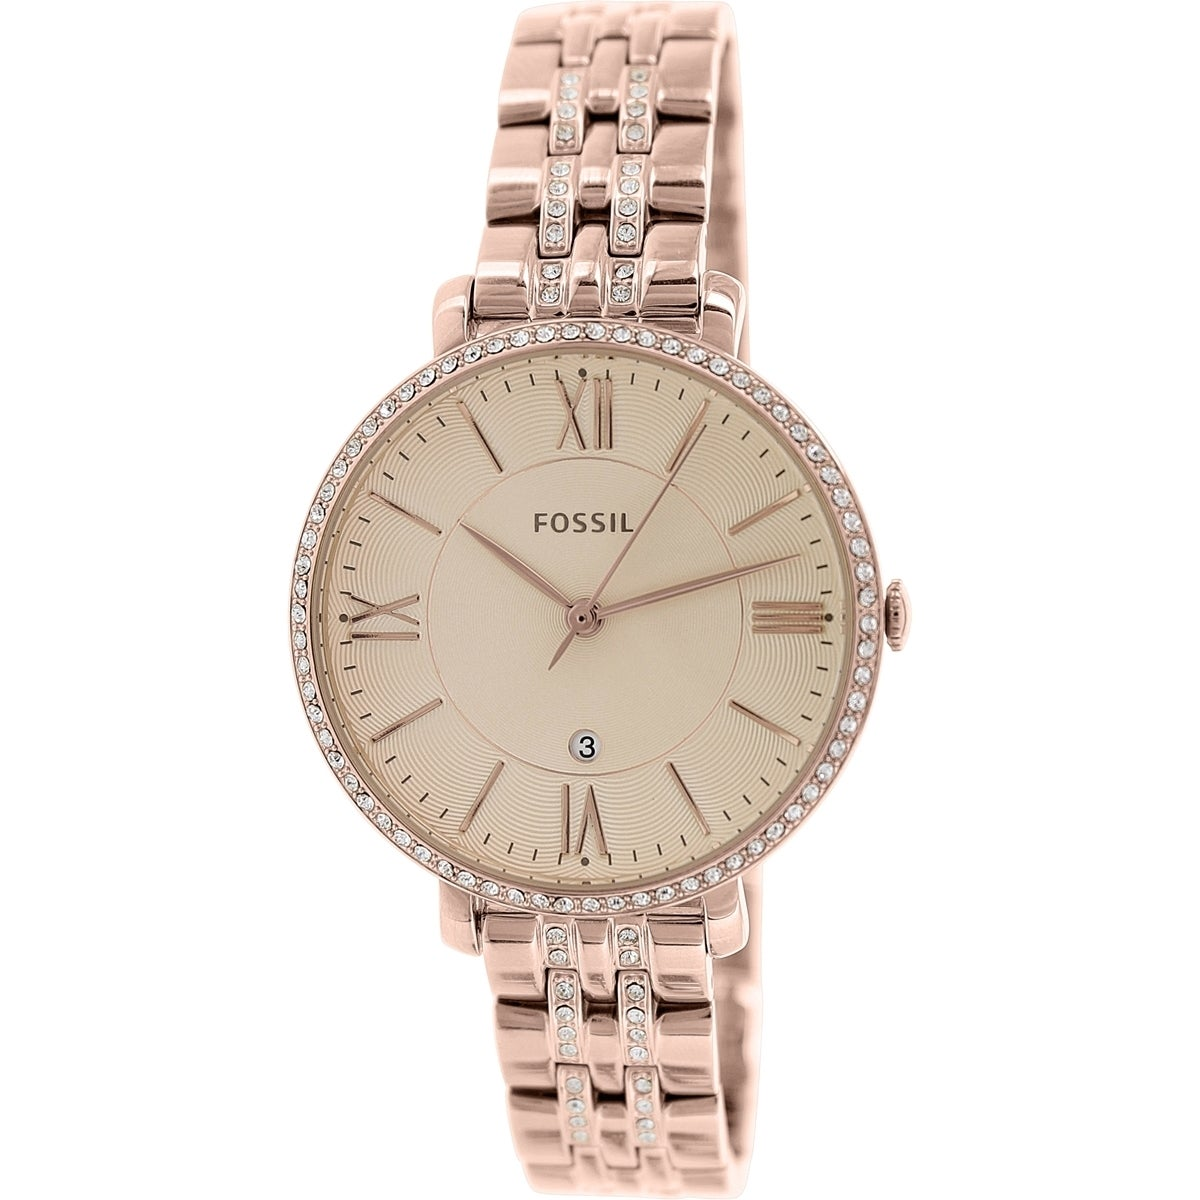 53550c84014 Shop Fossil Women s Jacqueline ES3546 Rose-gold Stainless Steel Quartz Watch  - Free Shipping Today - Overstock - 9830494